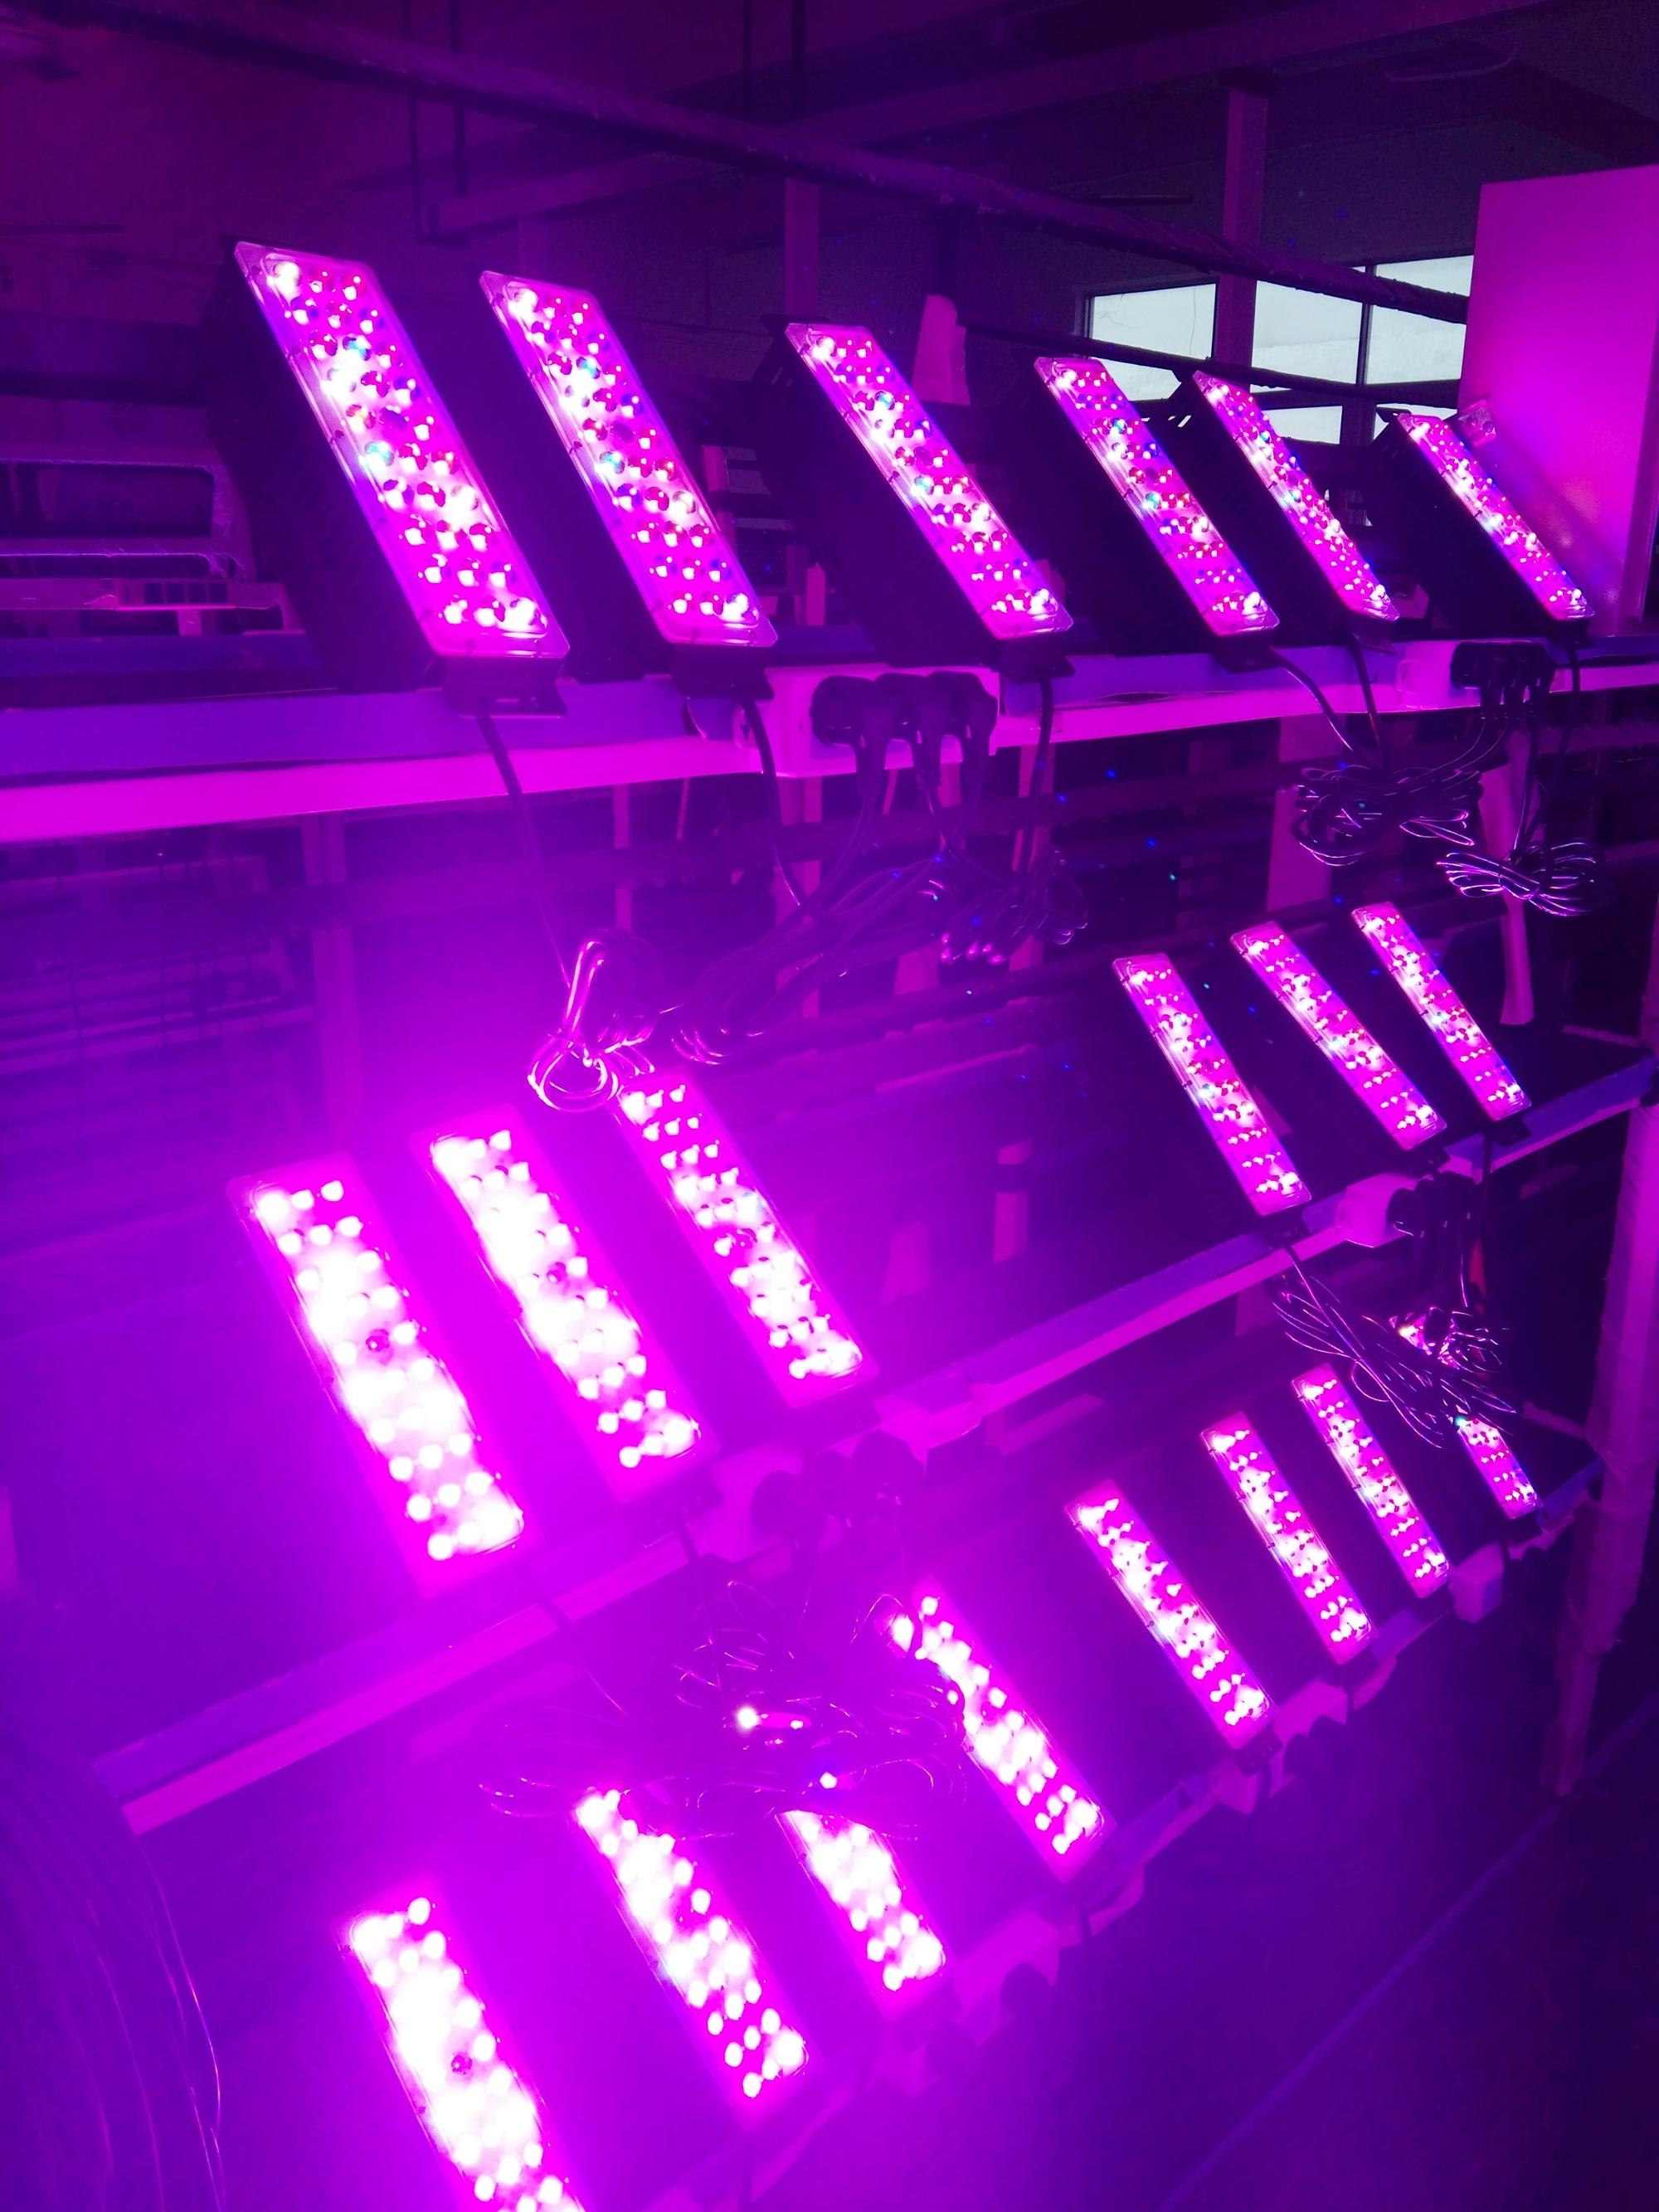 2019 Top Seller  Full Spectrum 45w--225w LED Grow Lighting  for Grow tents medical plants